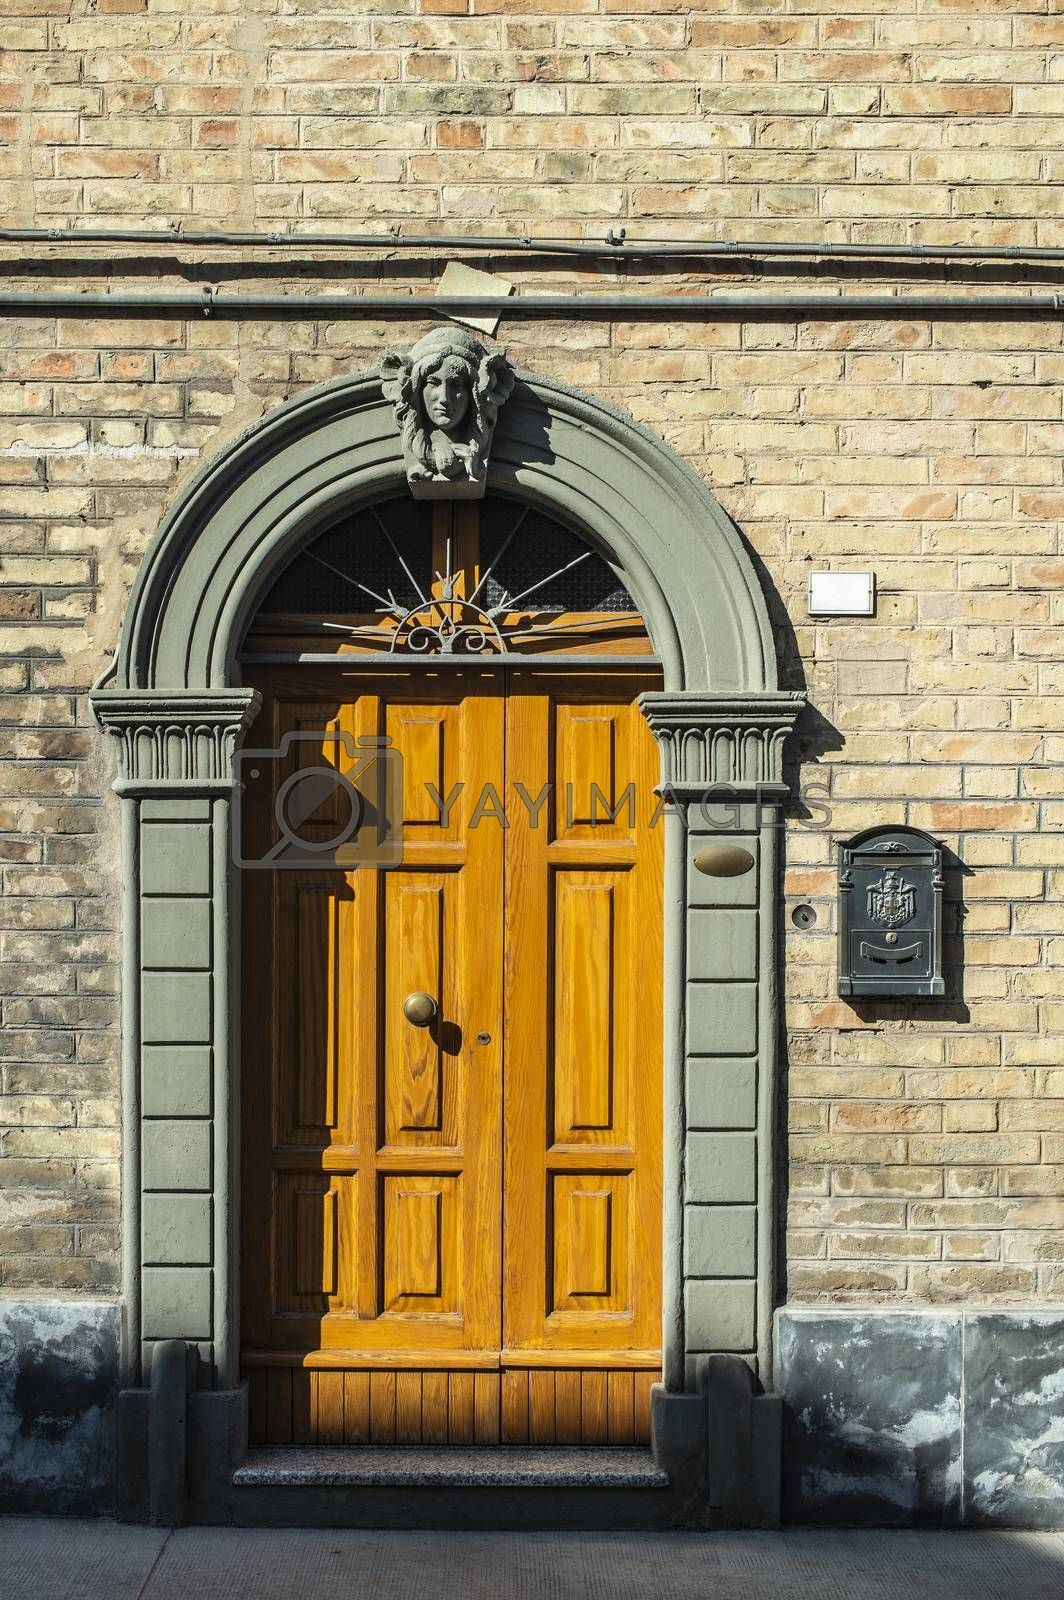 Old typical italian wooden door. Italian house. Ancient house facade. Sunlight. Round door arch. Stone build house. Wrought iron door handles.